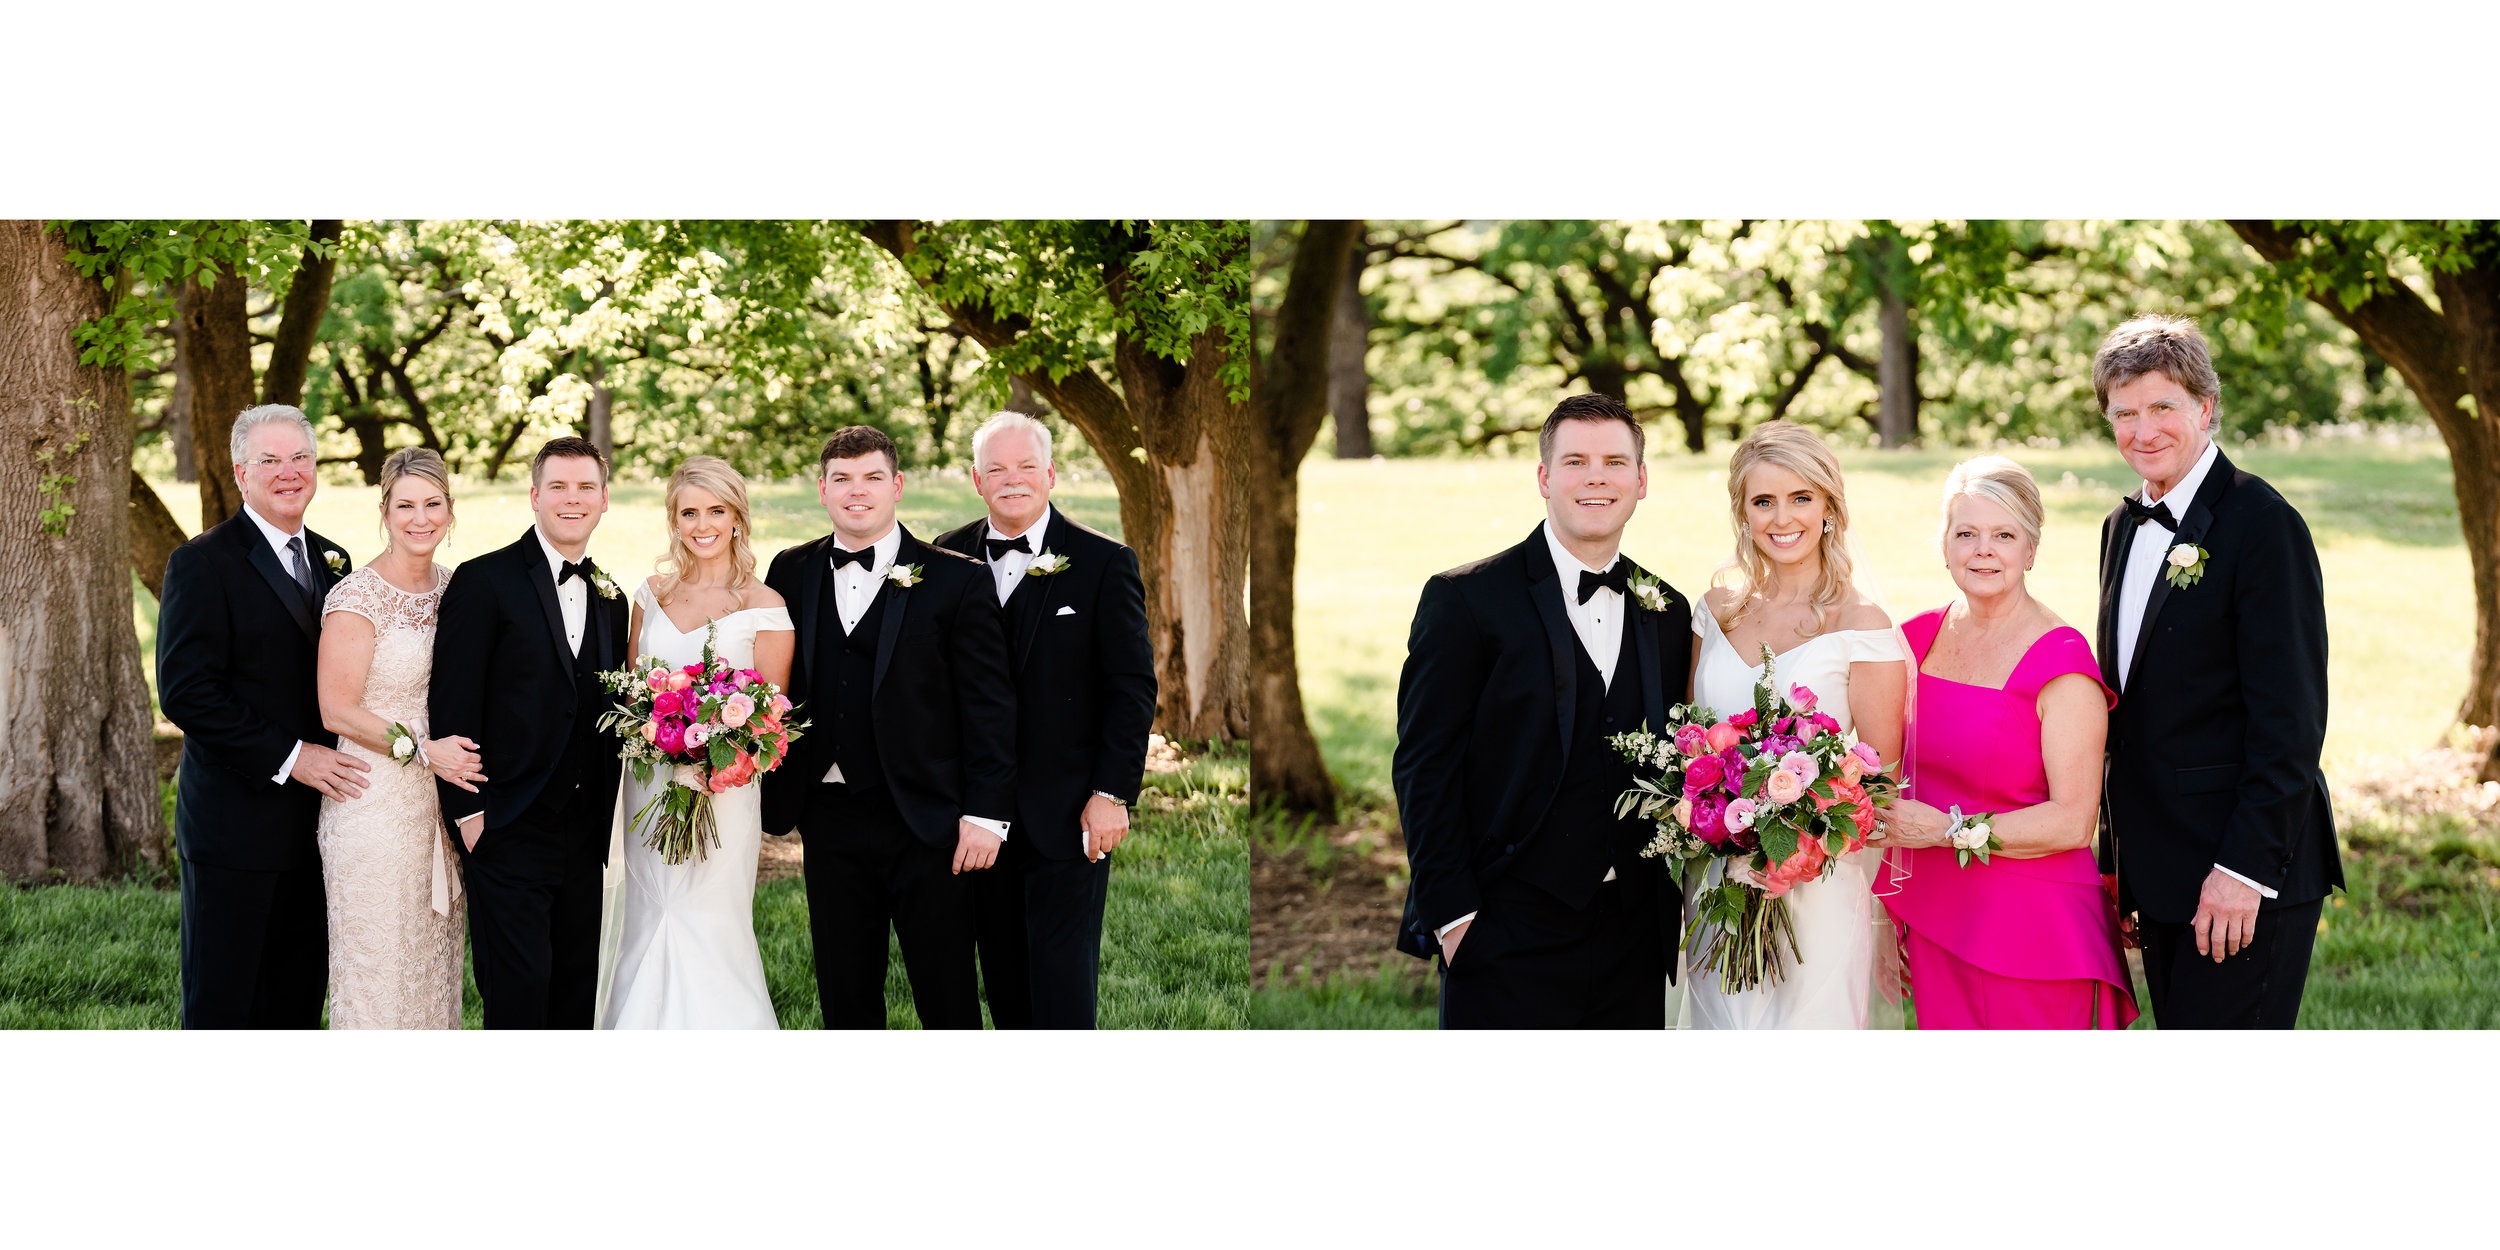 Amanda + Justin - Wedding Album_19.jpg